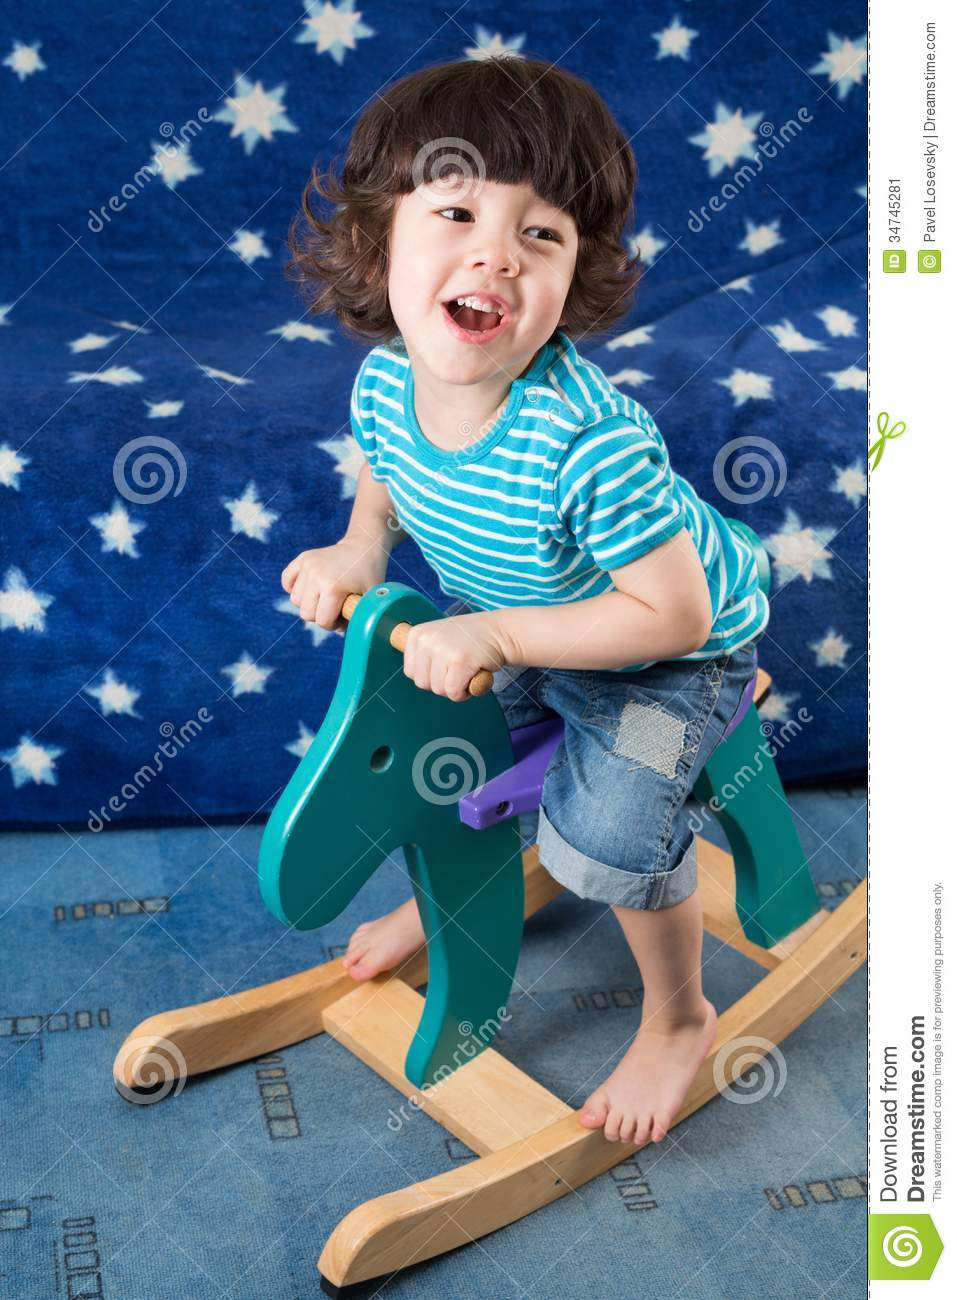 Download Little Boy On A Toy Horse In A Room Stock Image - Image of asterisk, play: 34745281